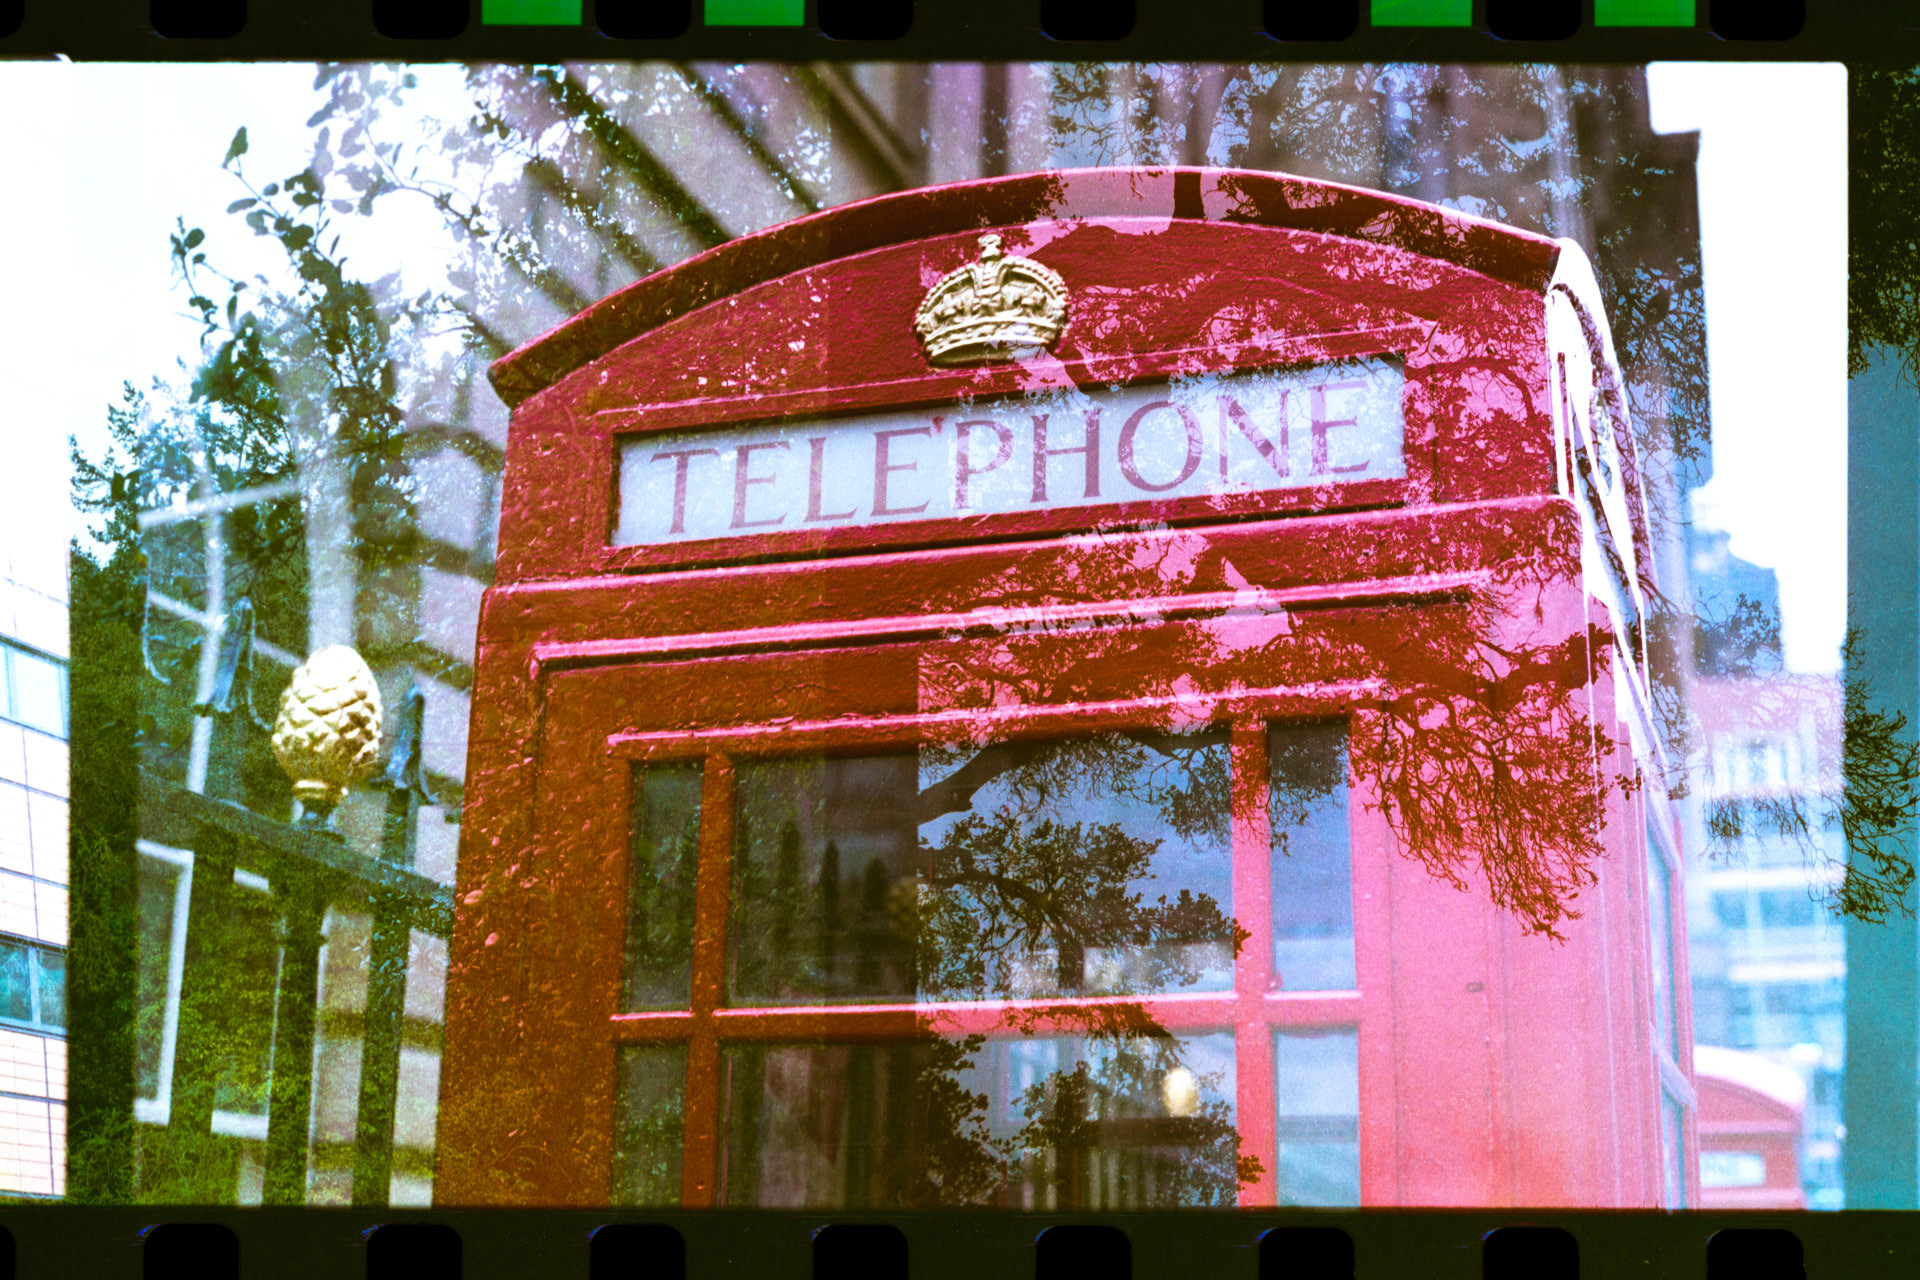 Telephone box at Exchange Flags, Liverpool.